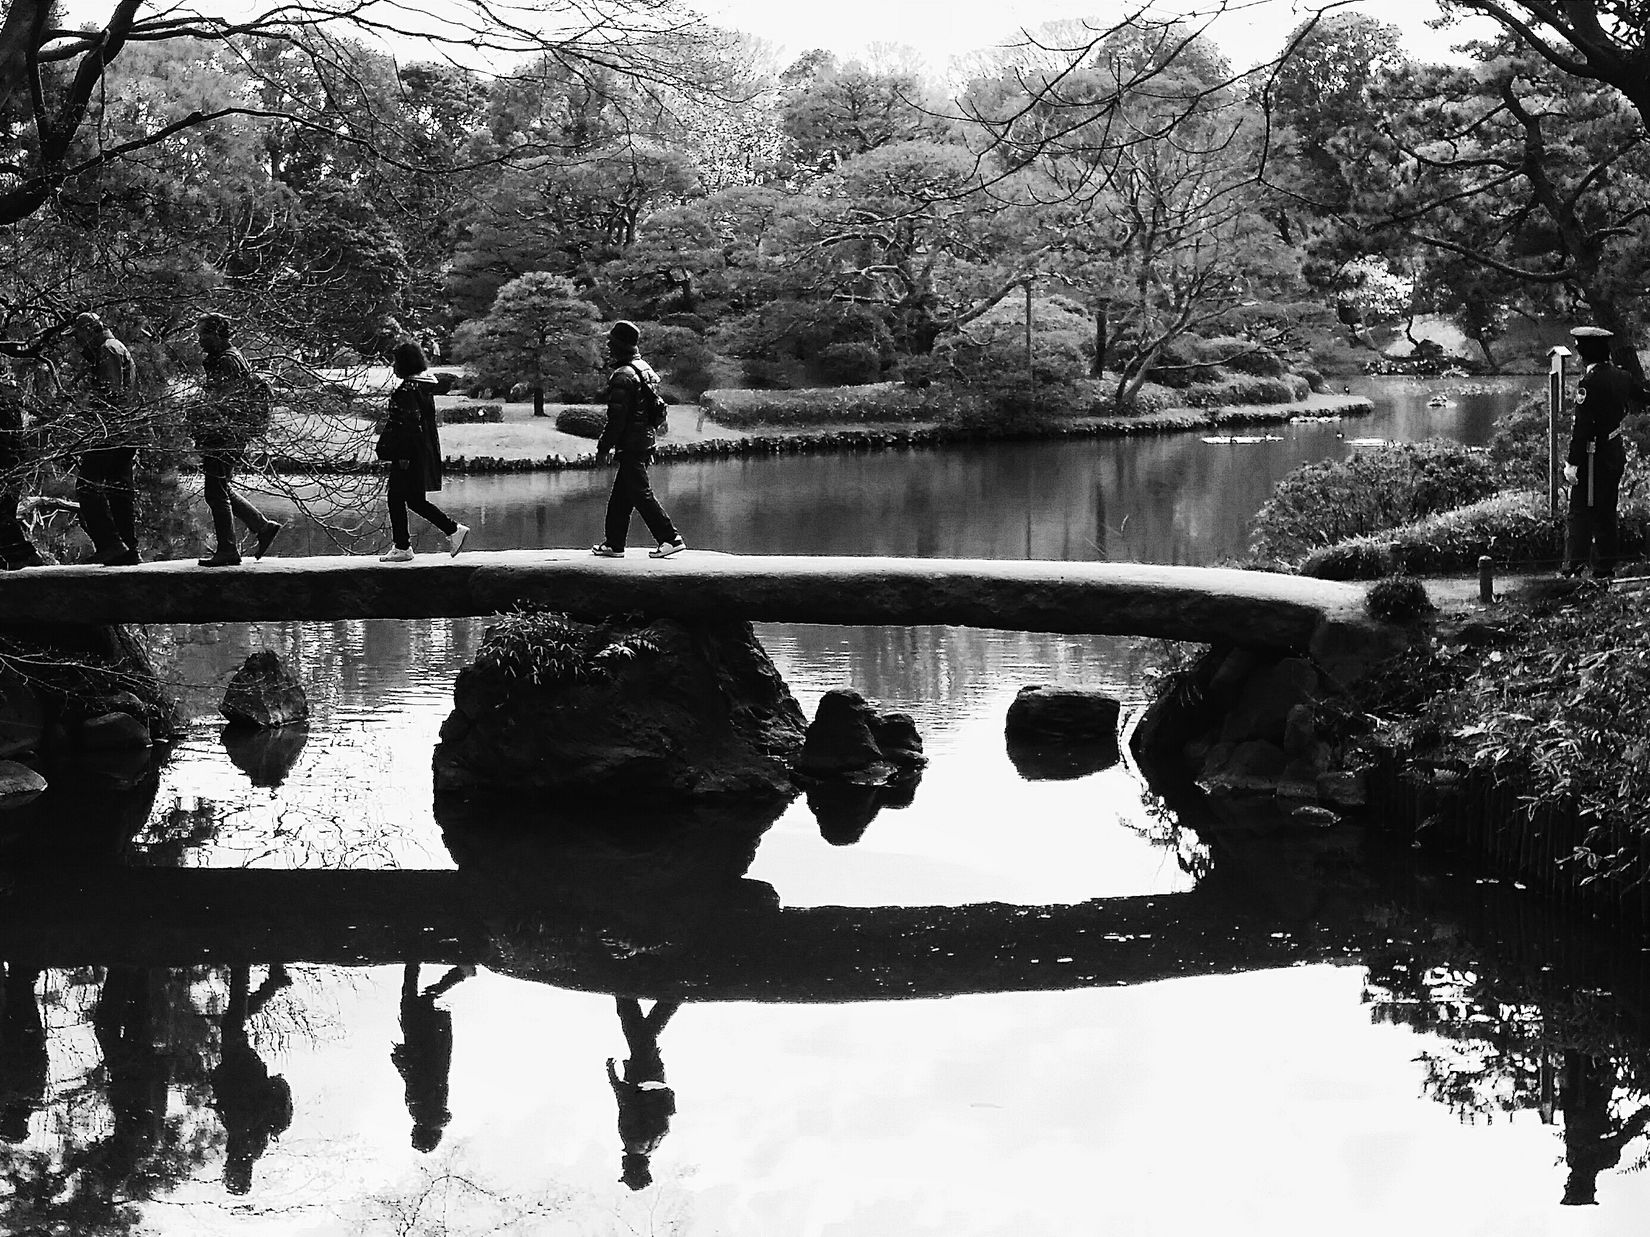 The guard stands on the right of the bridge, directing (single-file) traffic flow on the bridge Reflections Crossing The Bridge Bridge Guard Rikugien Garden Rikugienspring2016 Edo Garden Tokyo Tokyospring2016 Japan Japanese Culture Orderly Carefulness Consideration Streetphotography Bnw Bnw_capture Bnw_life Bnw_collection Bnw_globe Bnw_streetphotography Eyeem Photography EyeEM Tokyo Eyeem Nature Eyeem Spring